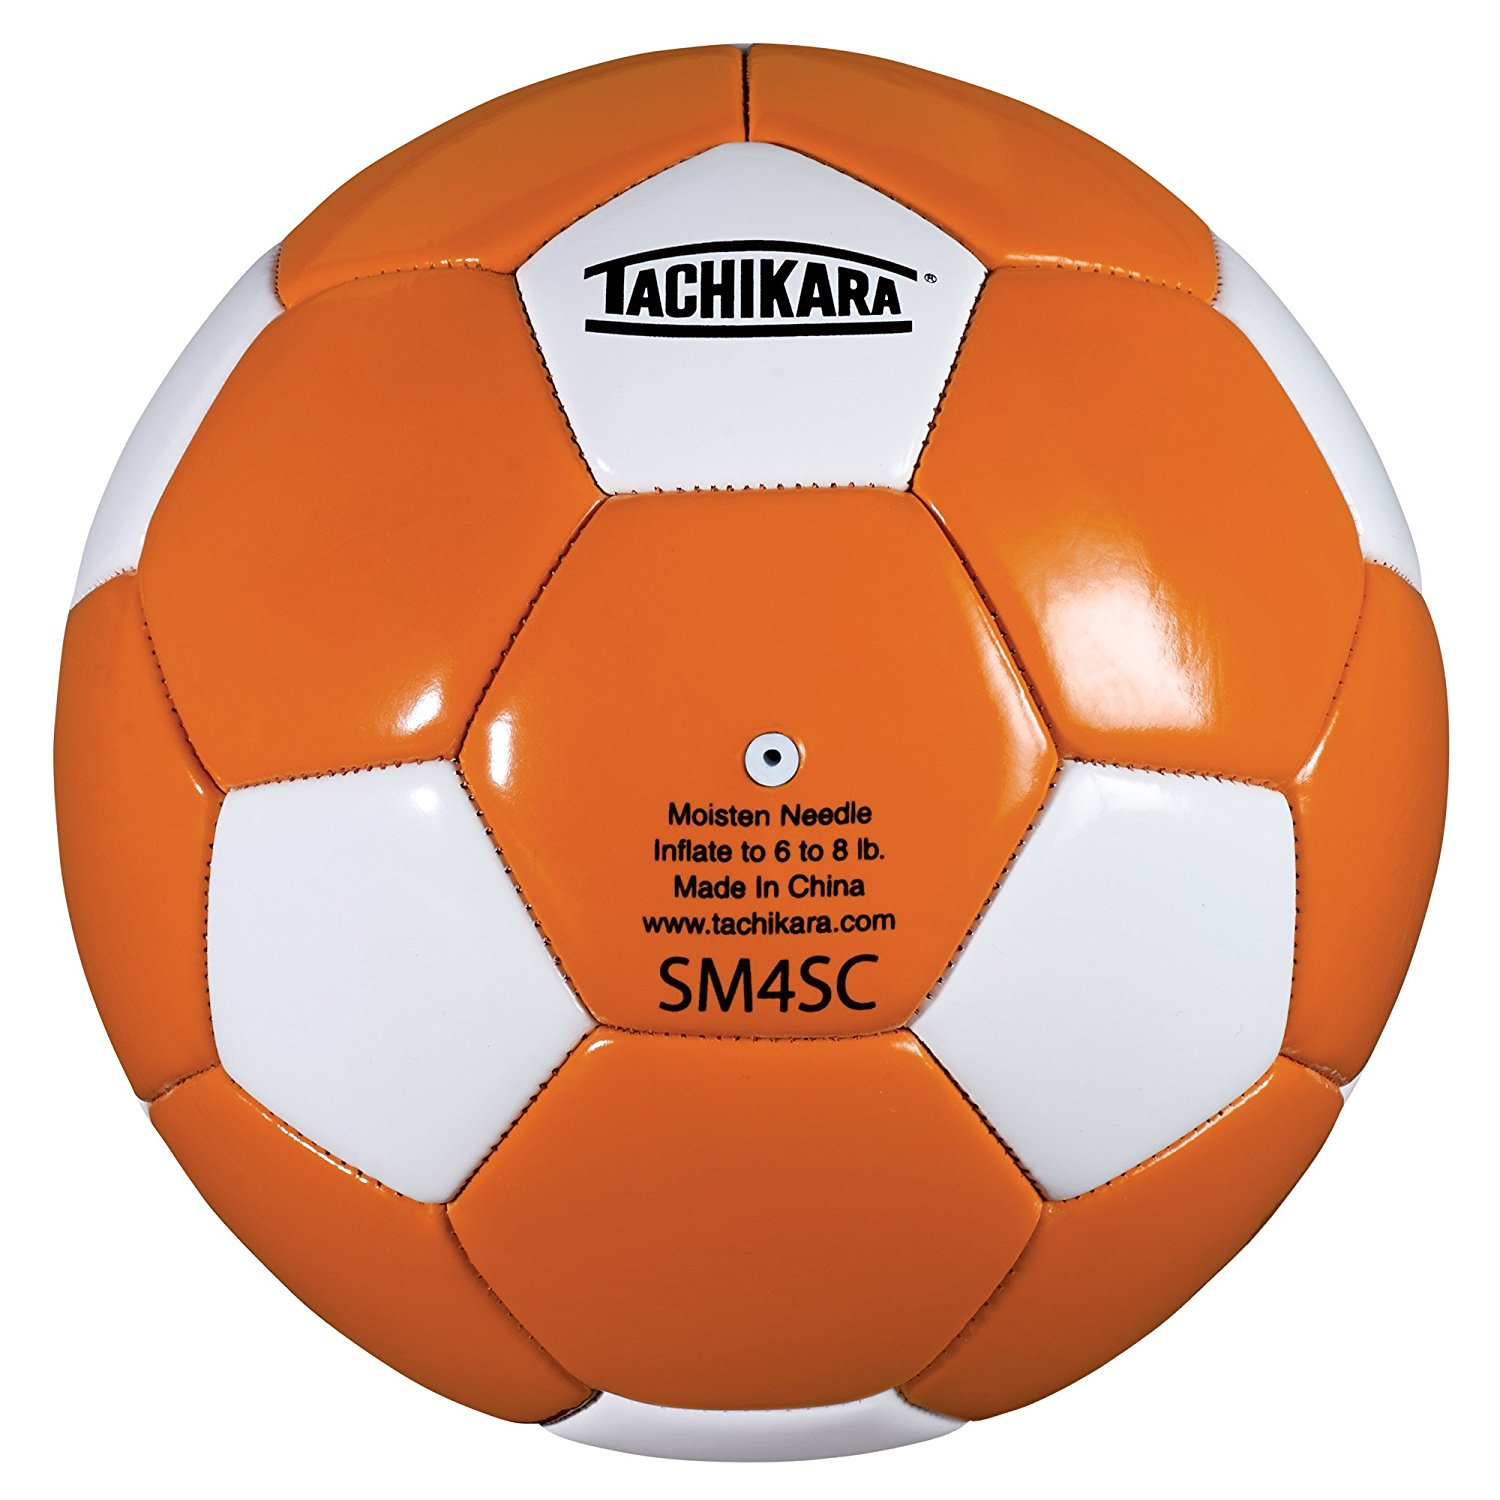 SM4SC dual colored soft PU soccer ball, size 4 (orange/white)., This ball is sold and shipped deflated. By Tachikara